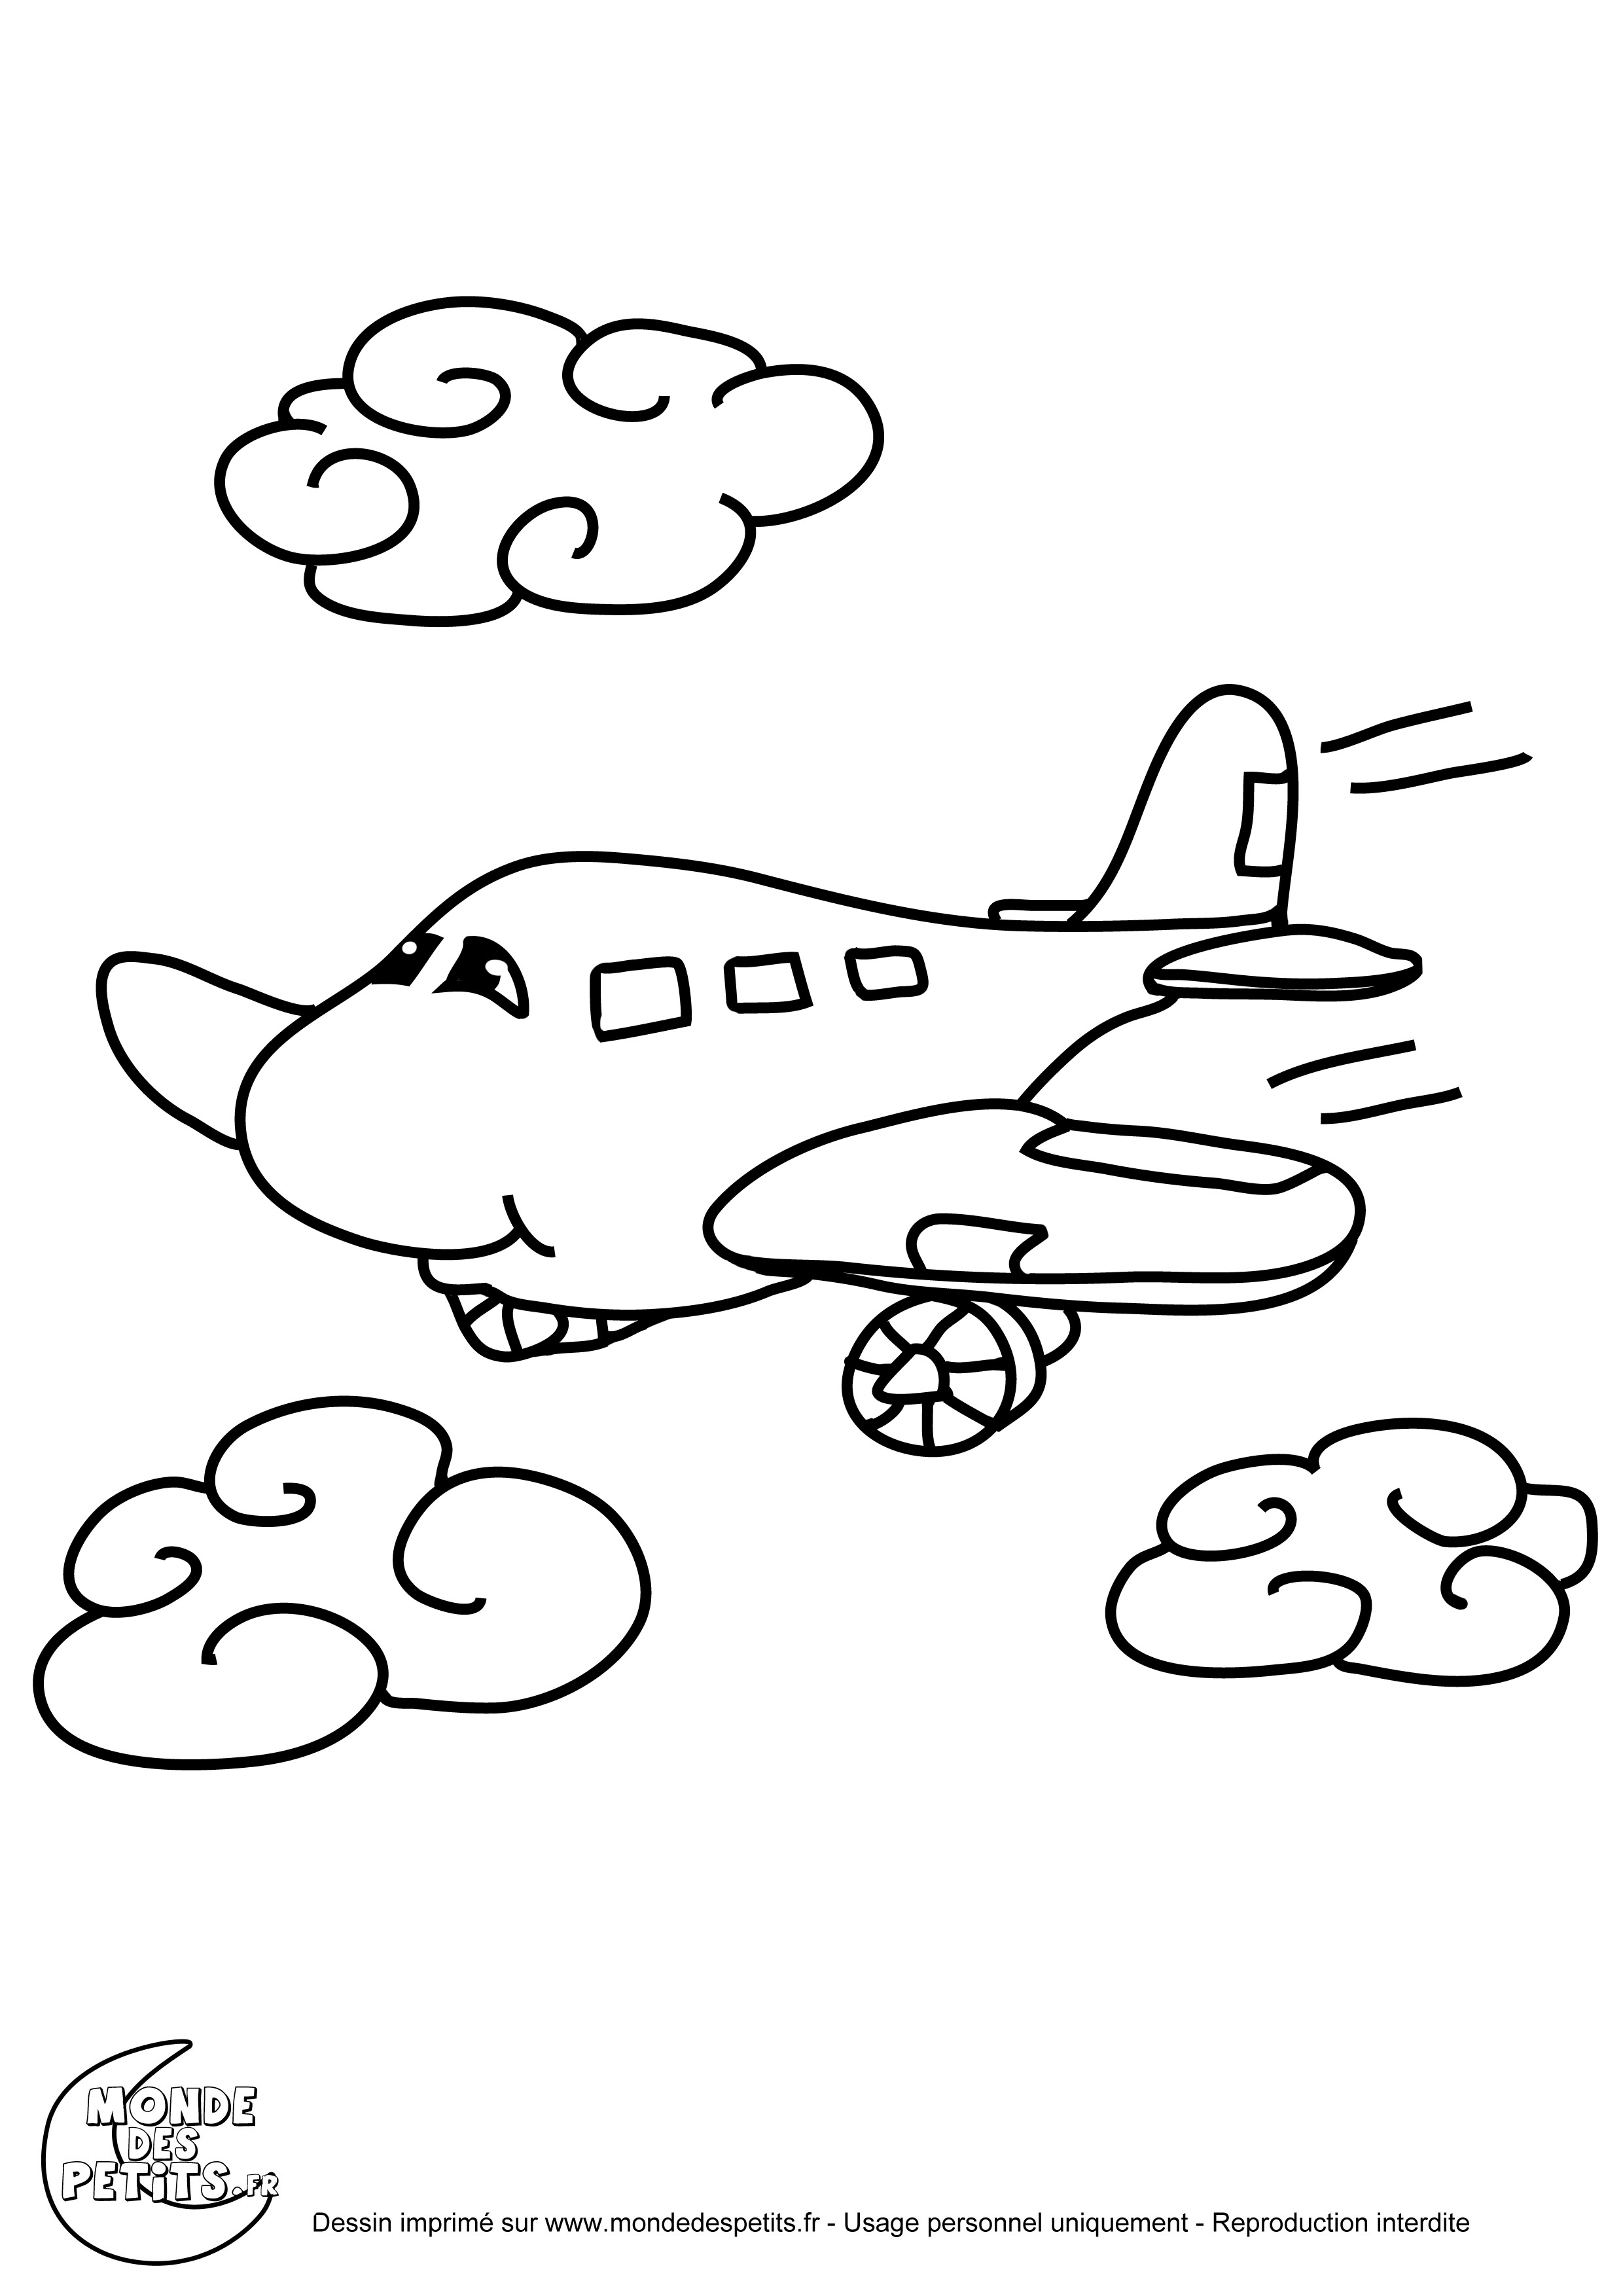 124 Dessins De Coloriage Avion à Imprimer